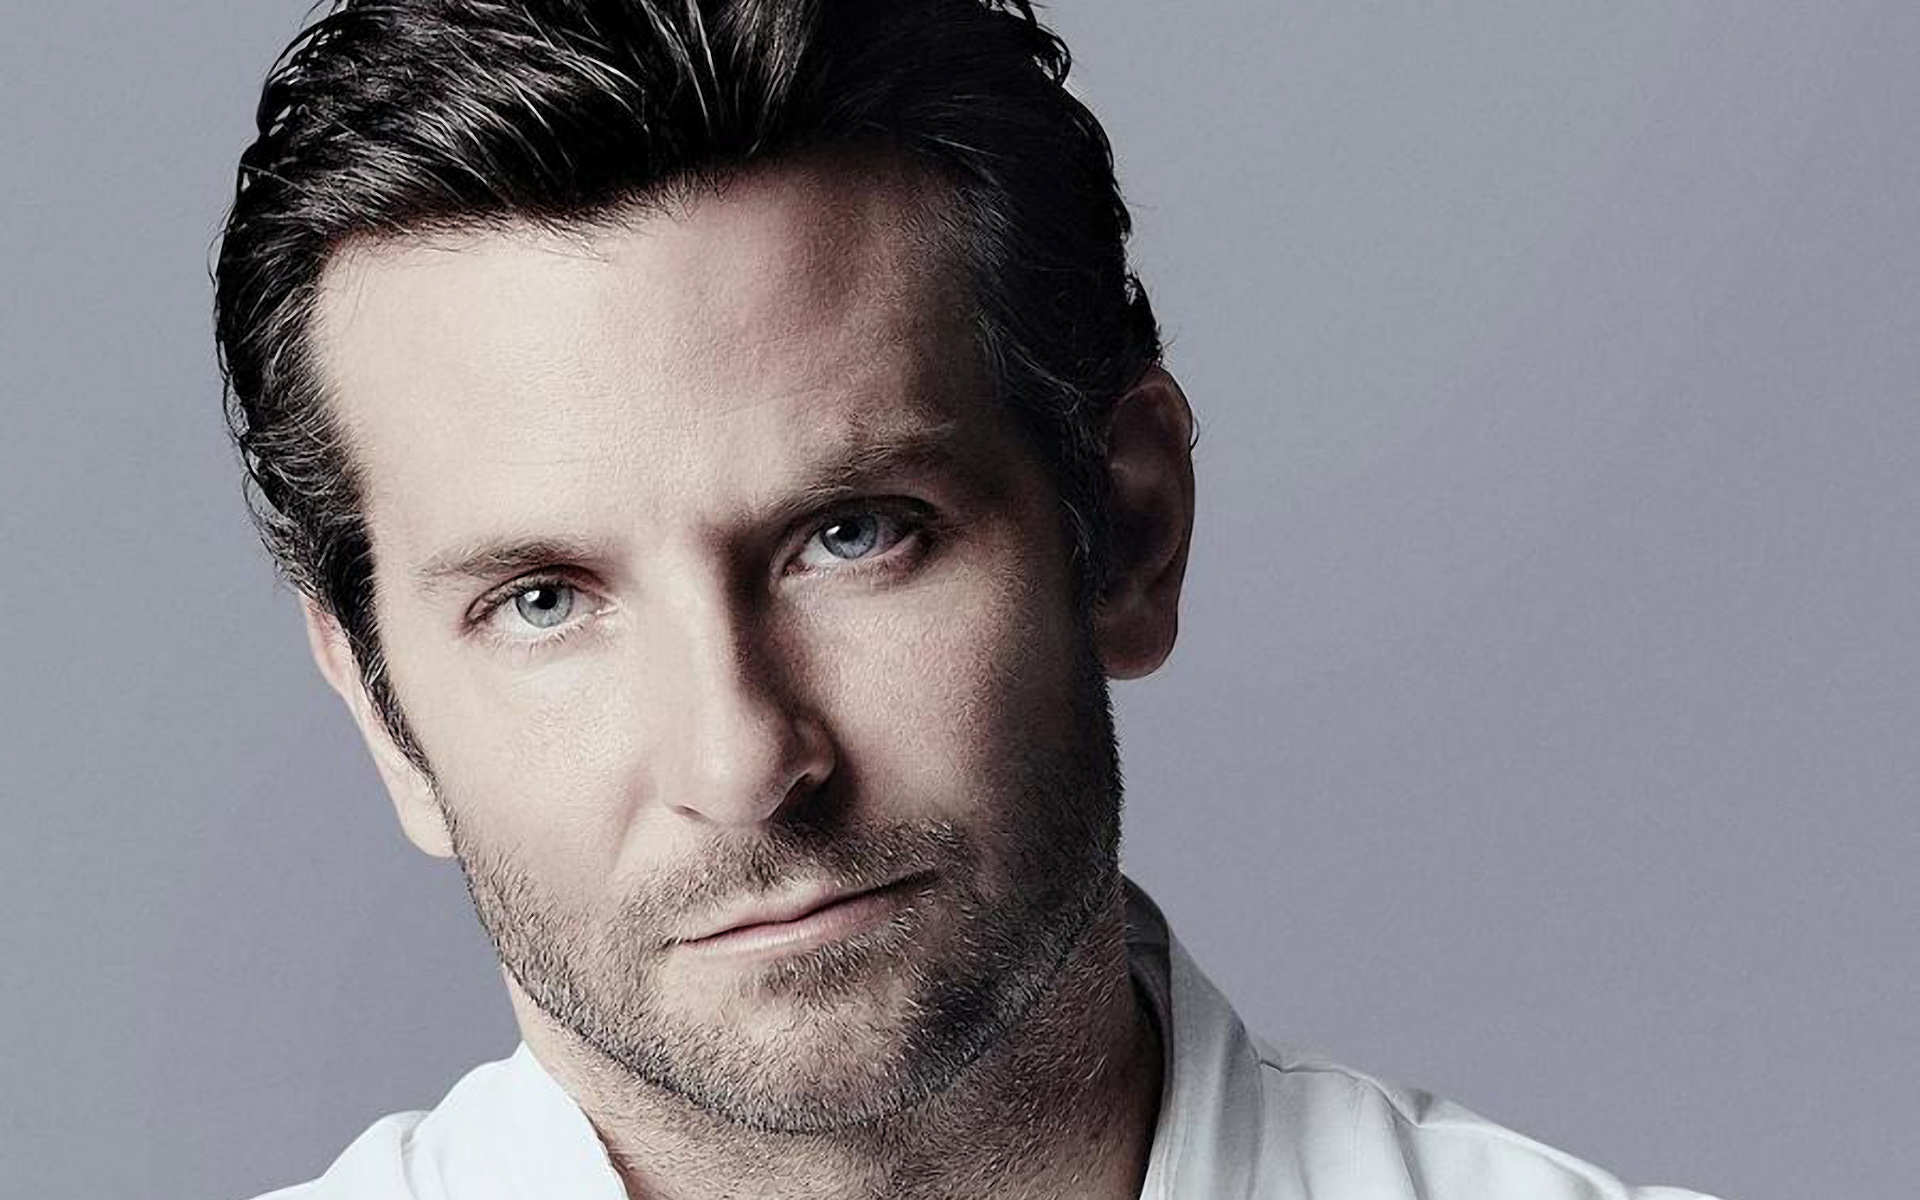 Bradley Cooper Wallpapers High Resolution and Quality Download 1920x1200